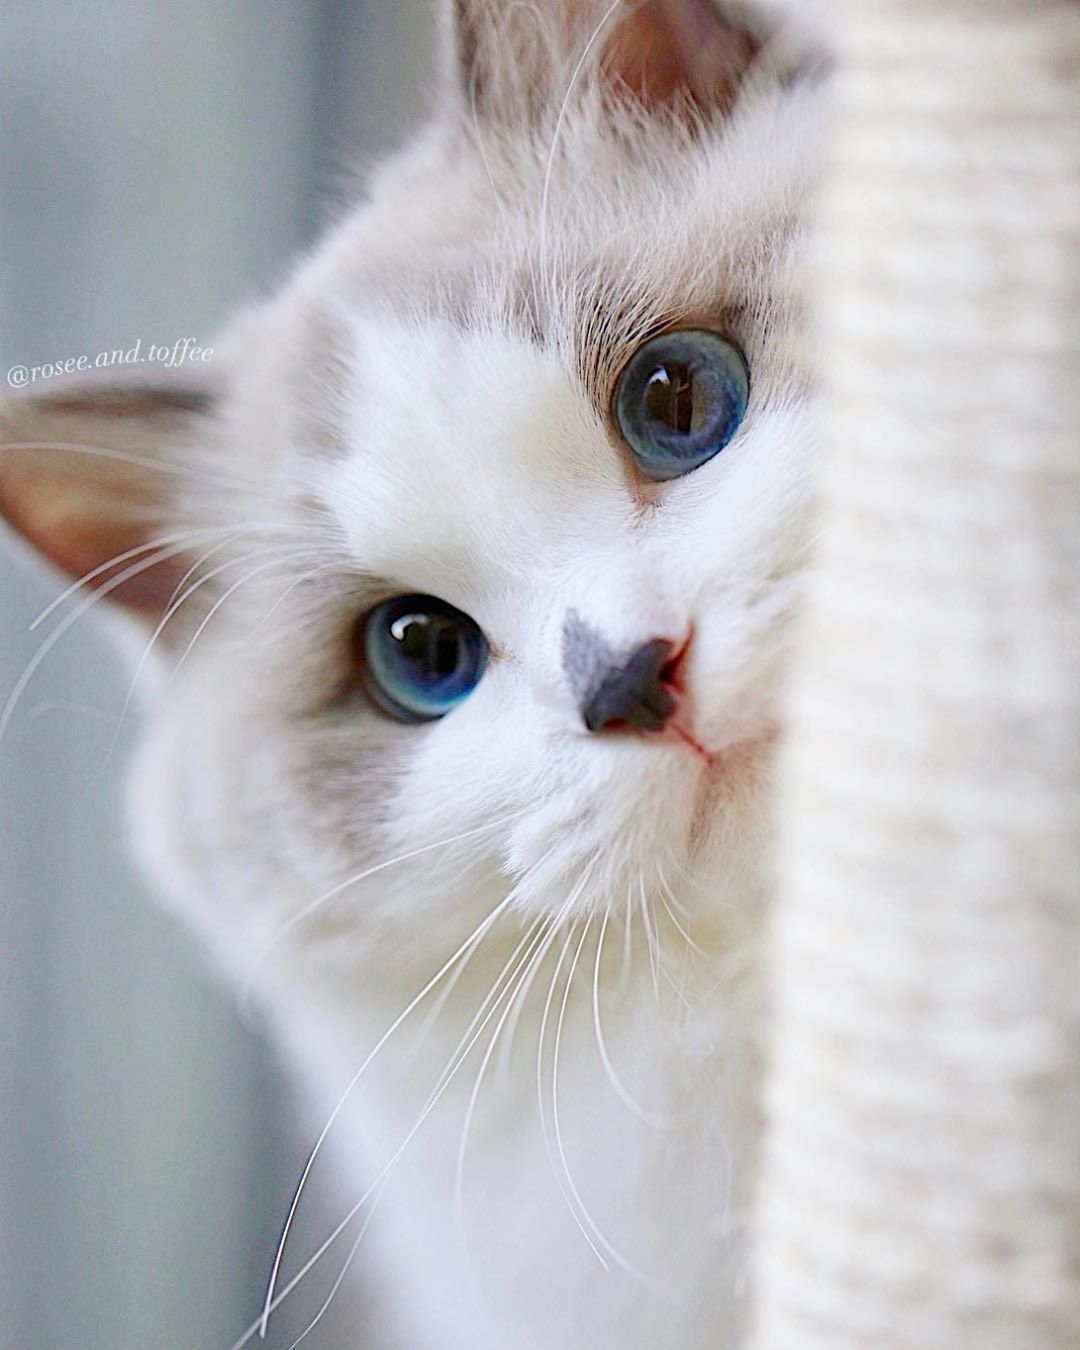 Cat Lover Inc On Instagram Beautiful Rosee Love You I M Like My Cat I Run Around In Circles In My Apartment Cute Cats And Kittens Cats Cat Lovers